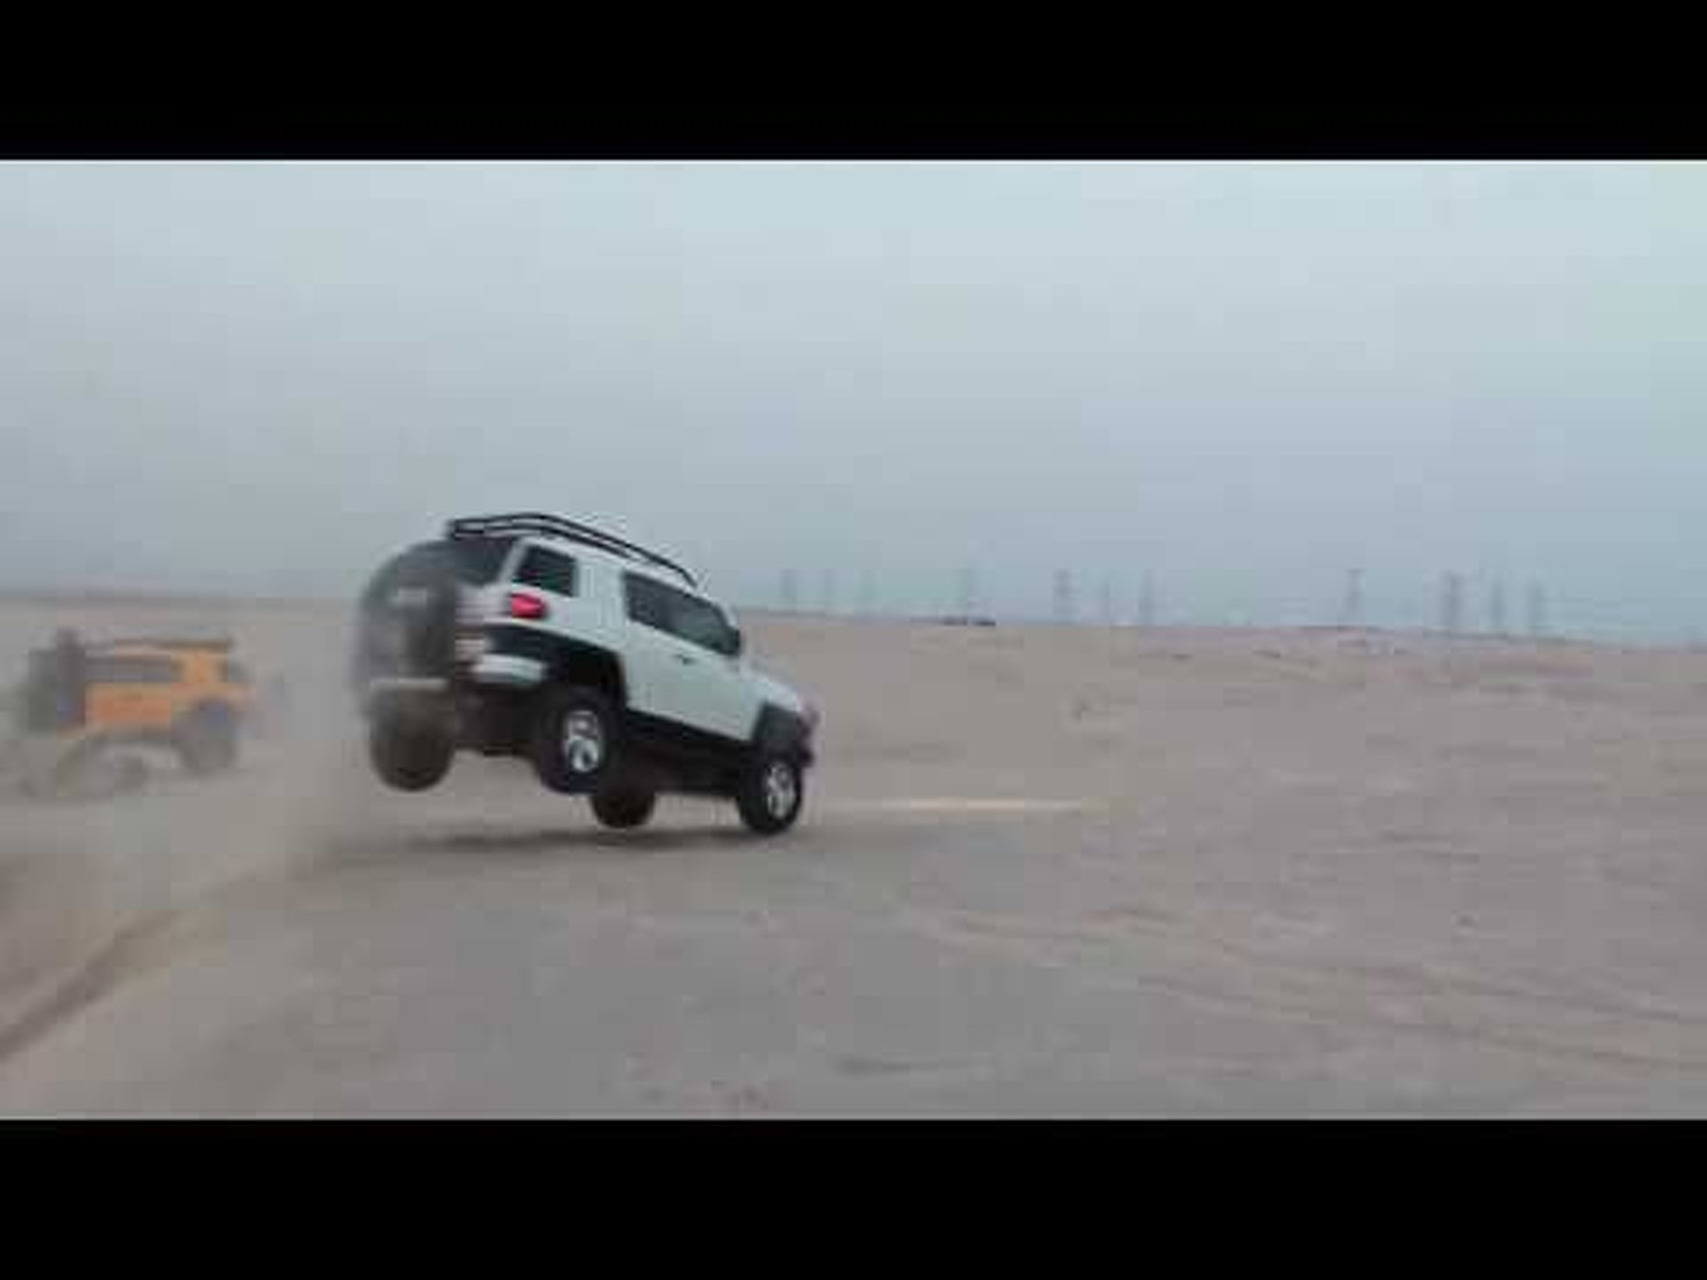 FJ Cruiser Gone Mad!